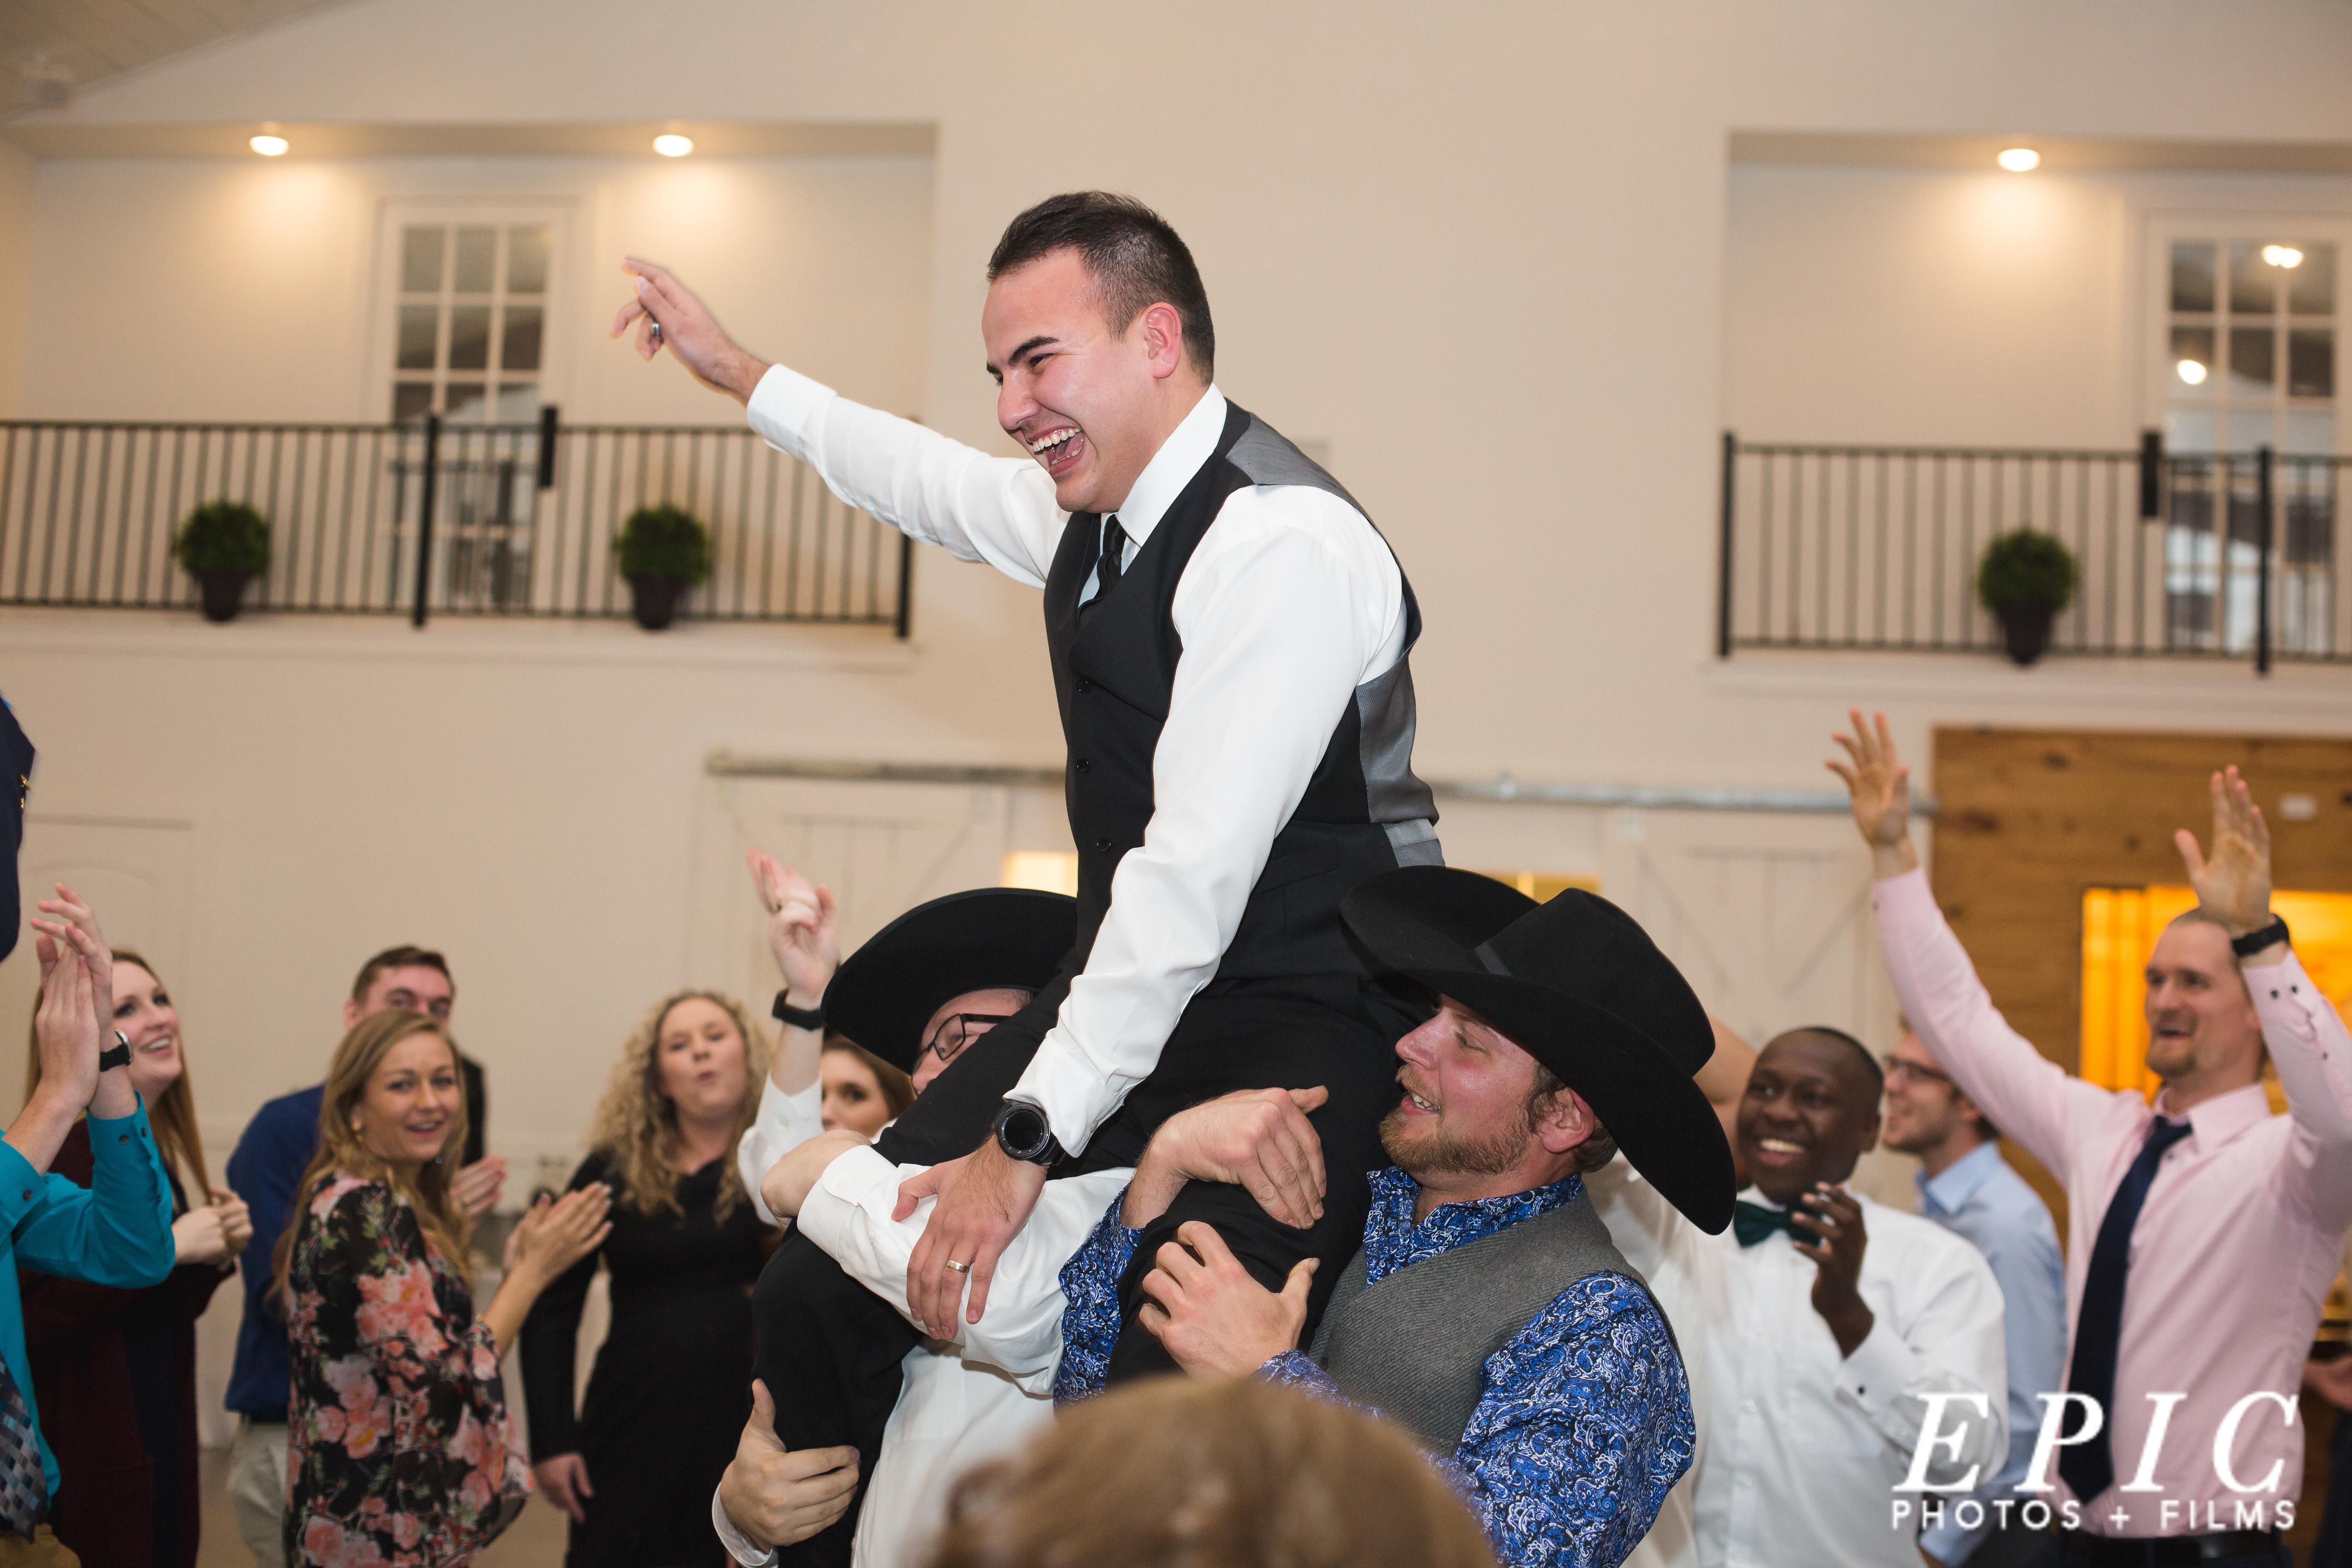 wedding guests carring the groom on their shoulders through a wedding reception